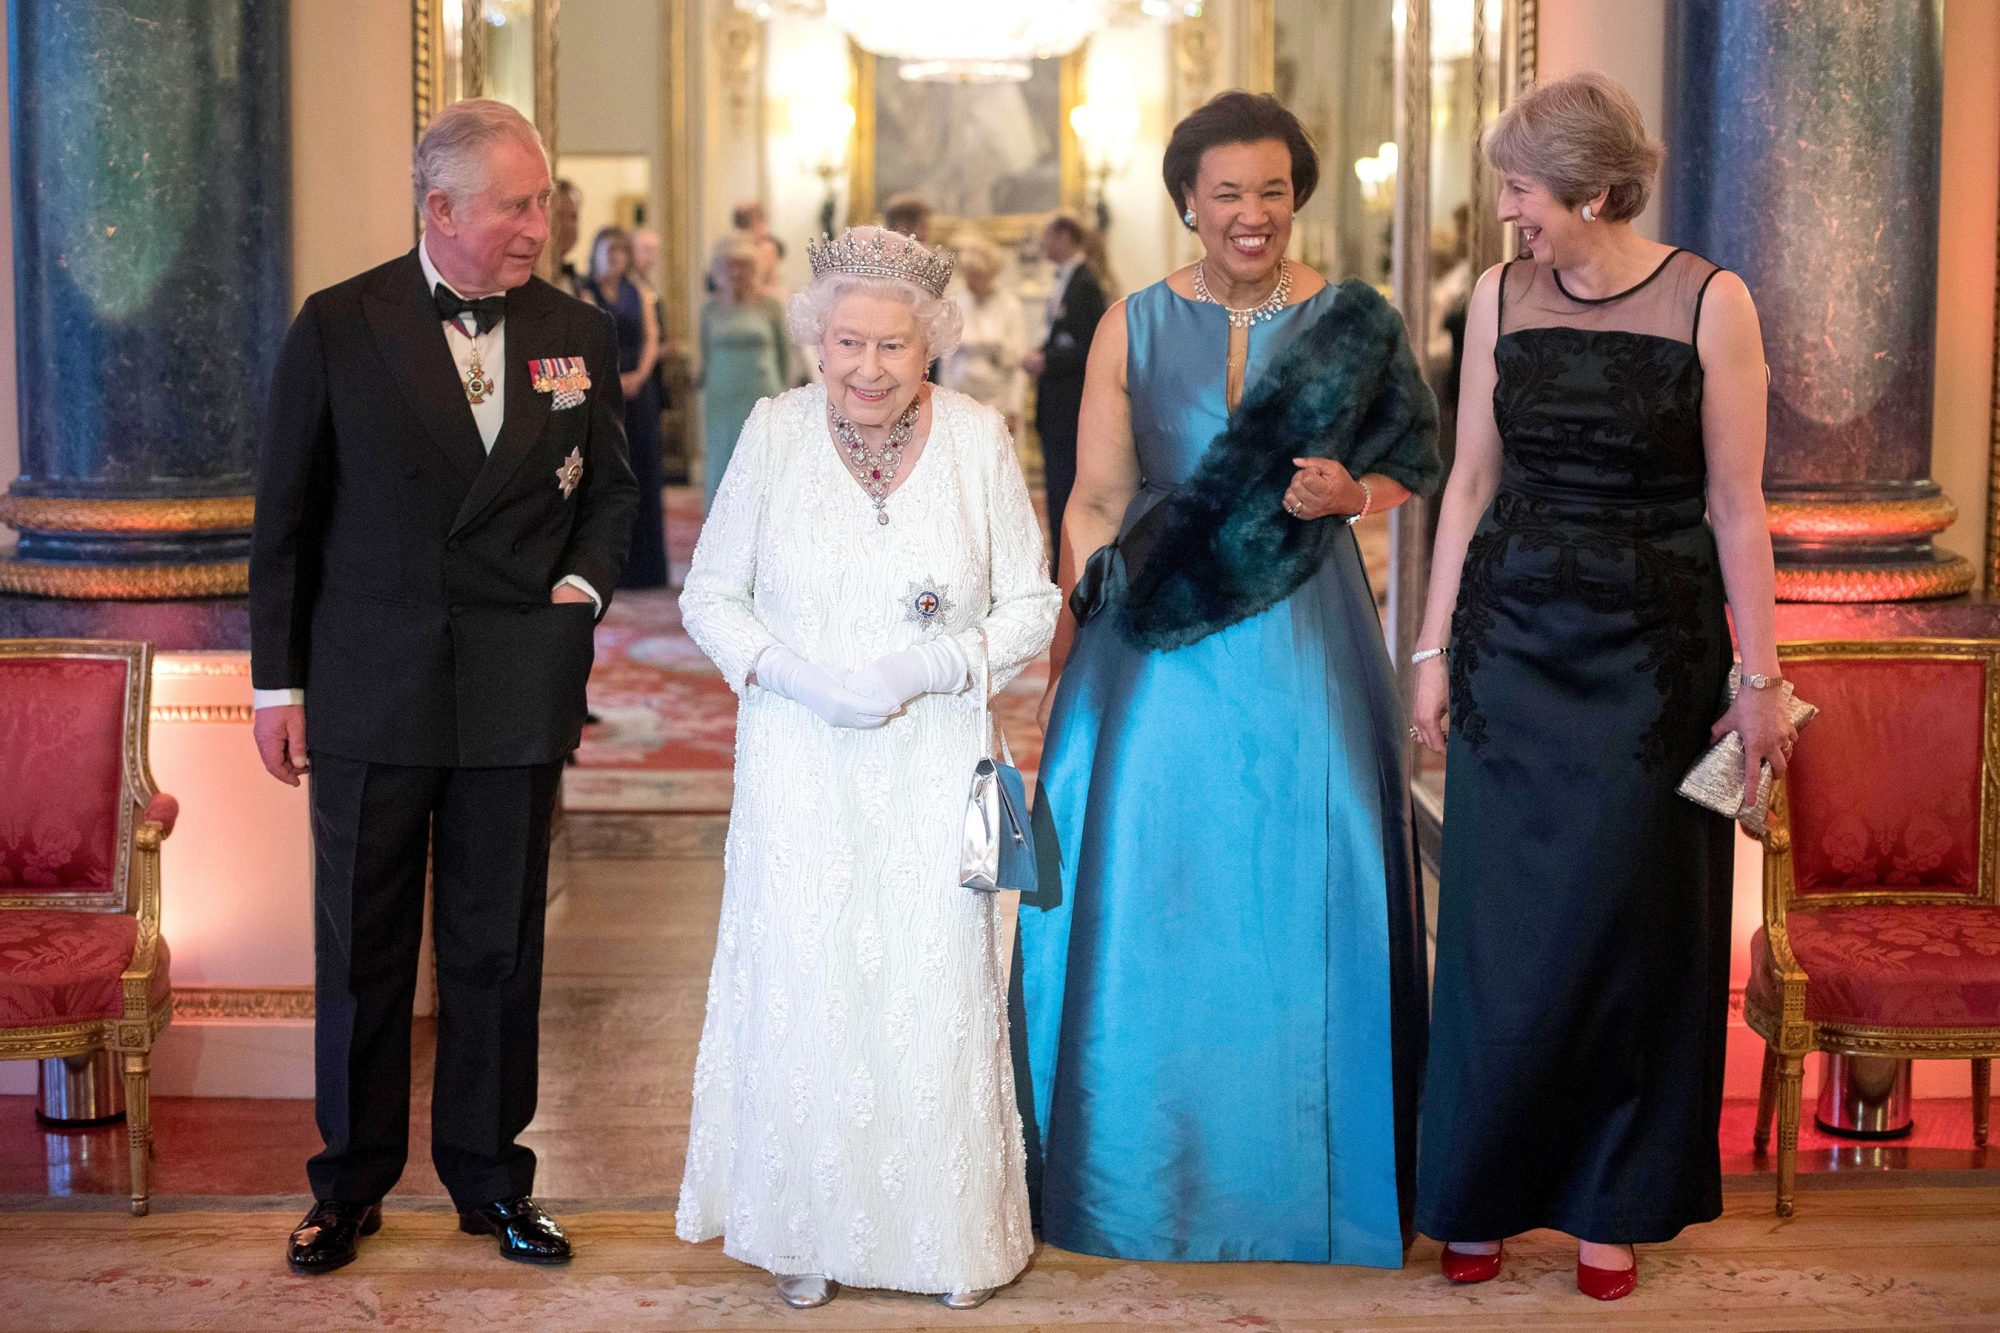 The Queen's Dinner, Commonwealth Heads of Government Meeting, London, UK - 19 Apr 2018